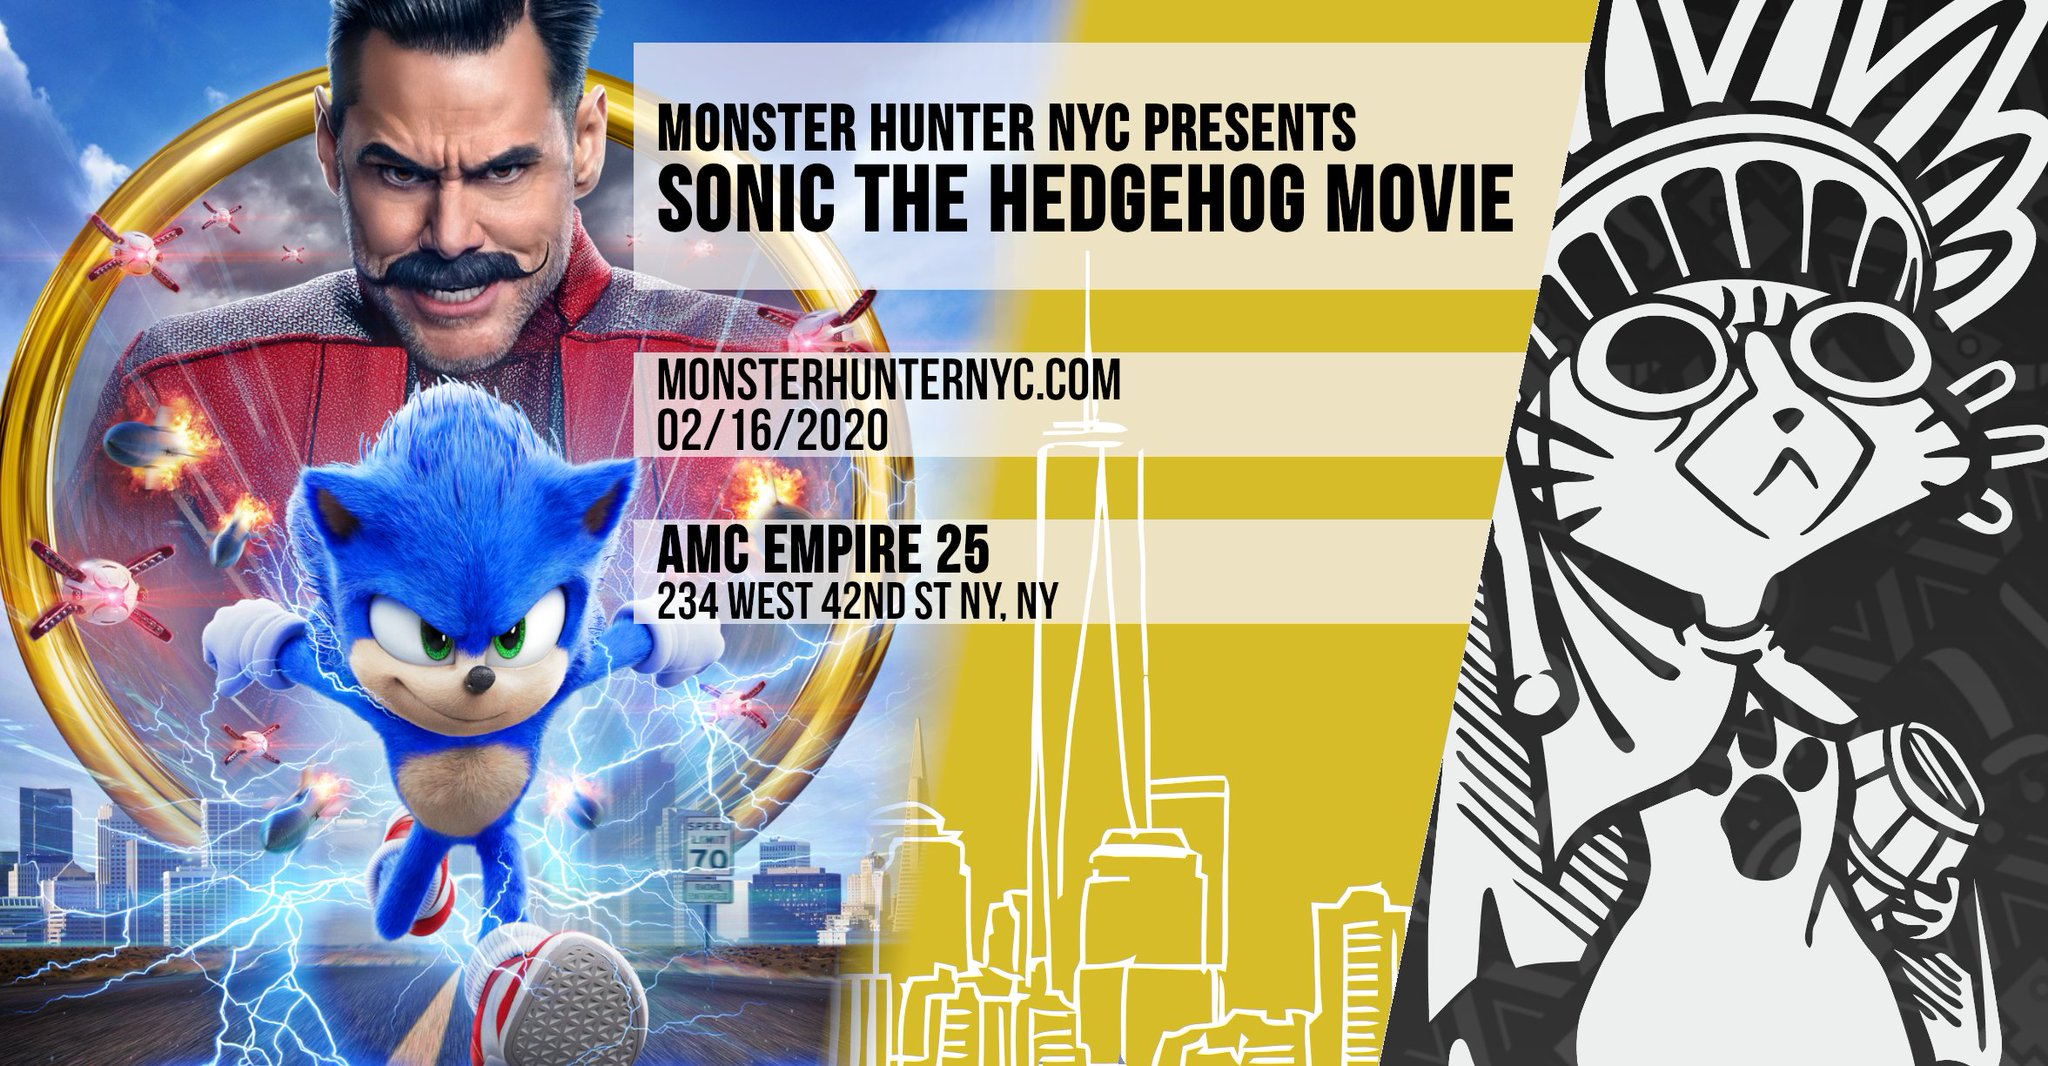 Mhnyc On Twitter Gotta Go Fast And Rush To Support A Movie We Forced To Have Reanimated Join Us On Sun Feb 16th As We Watch Sonic The Hedgehog For More Information